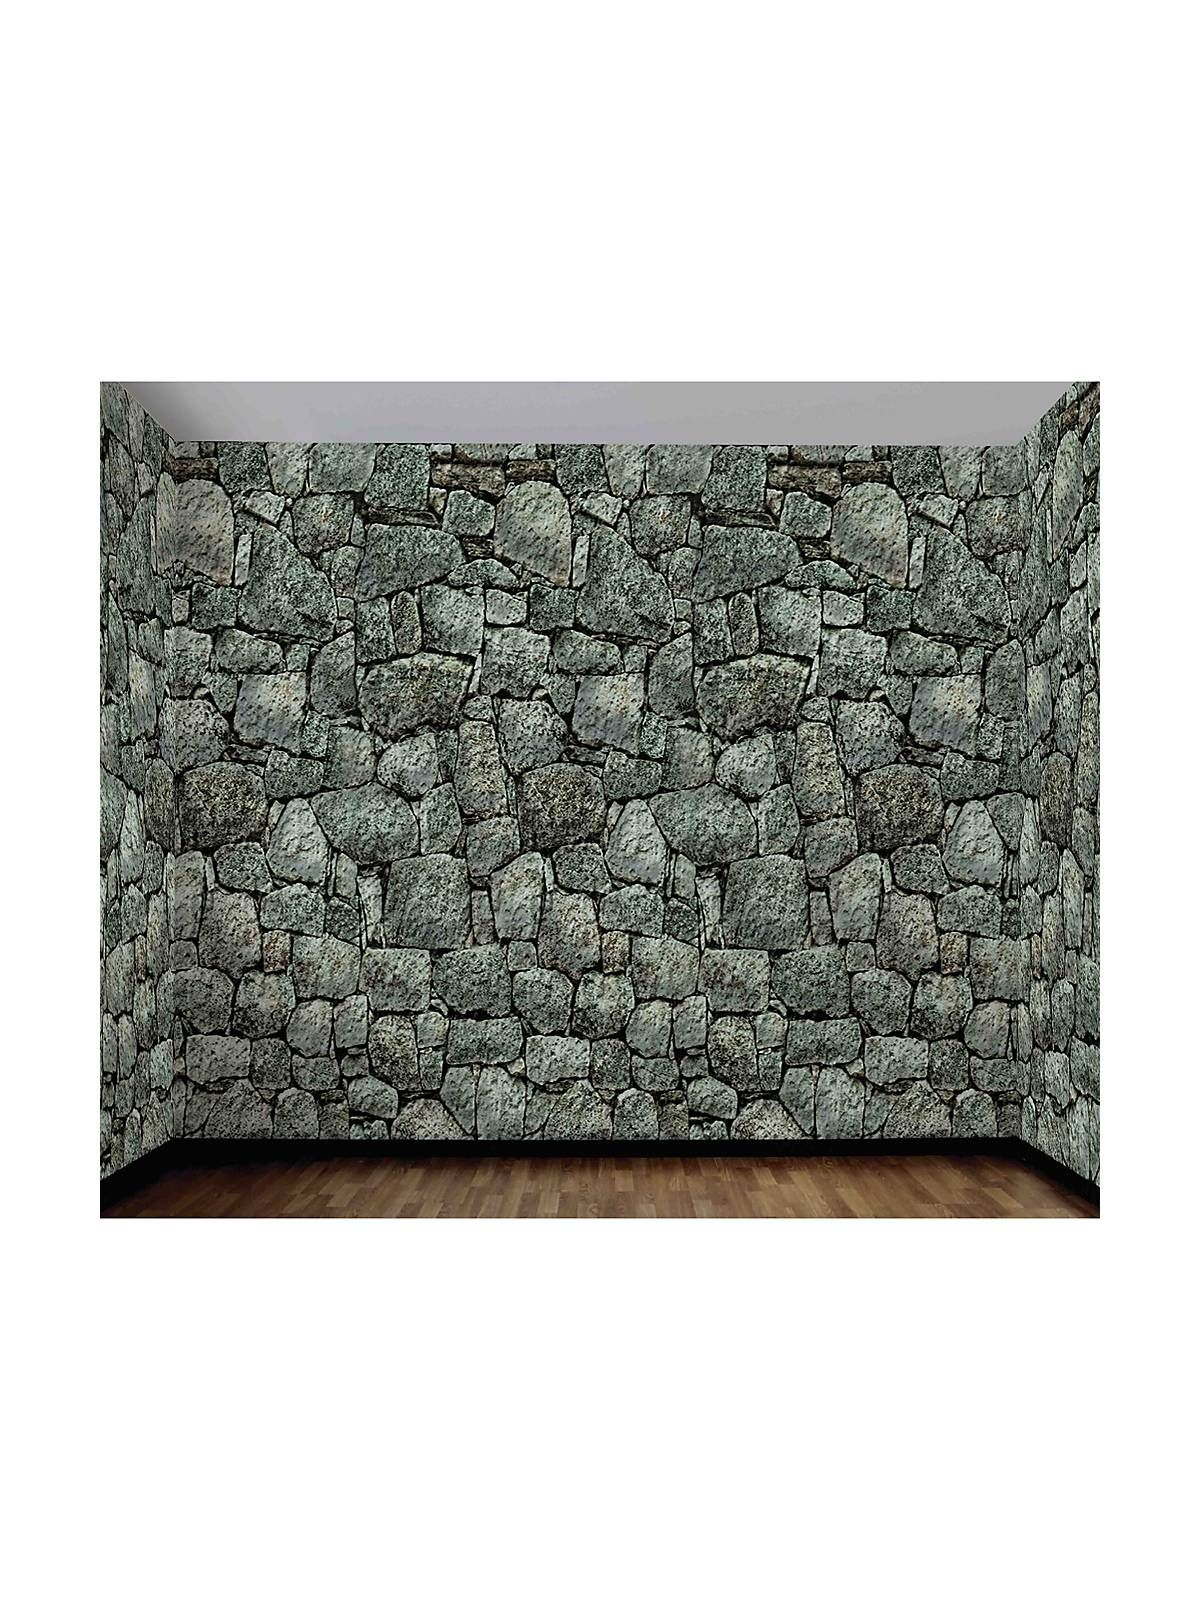 Dungeon stone wall decoration each wall decals cutouts buy dungeon stone wall scene setter and other party decorations party supplies the most popular party supplies and decorations all available at wholesale amipublicfo Image collections